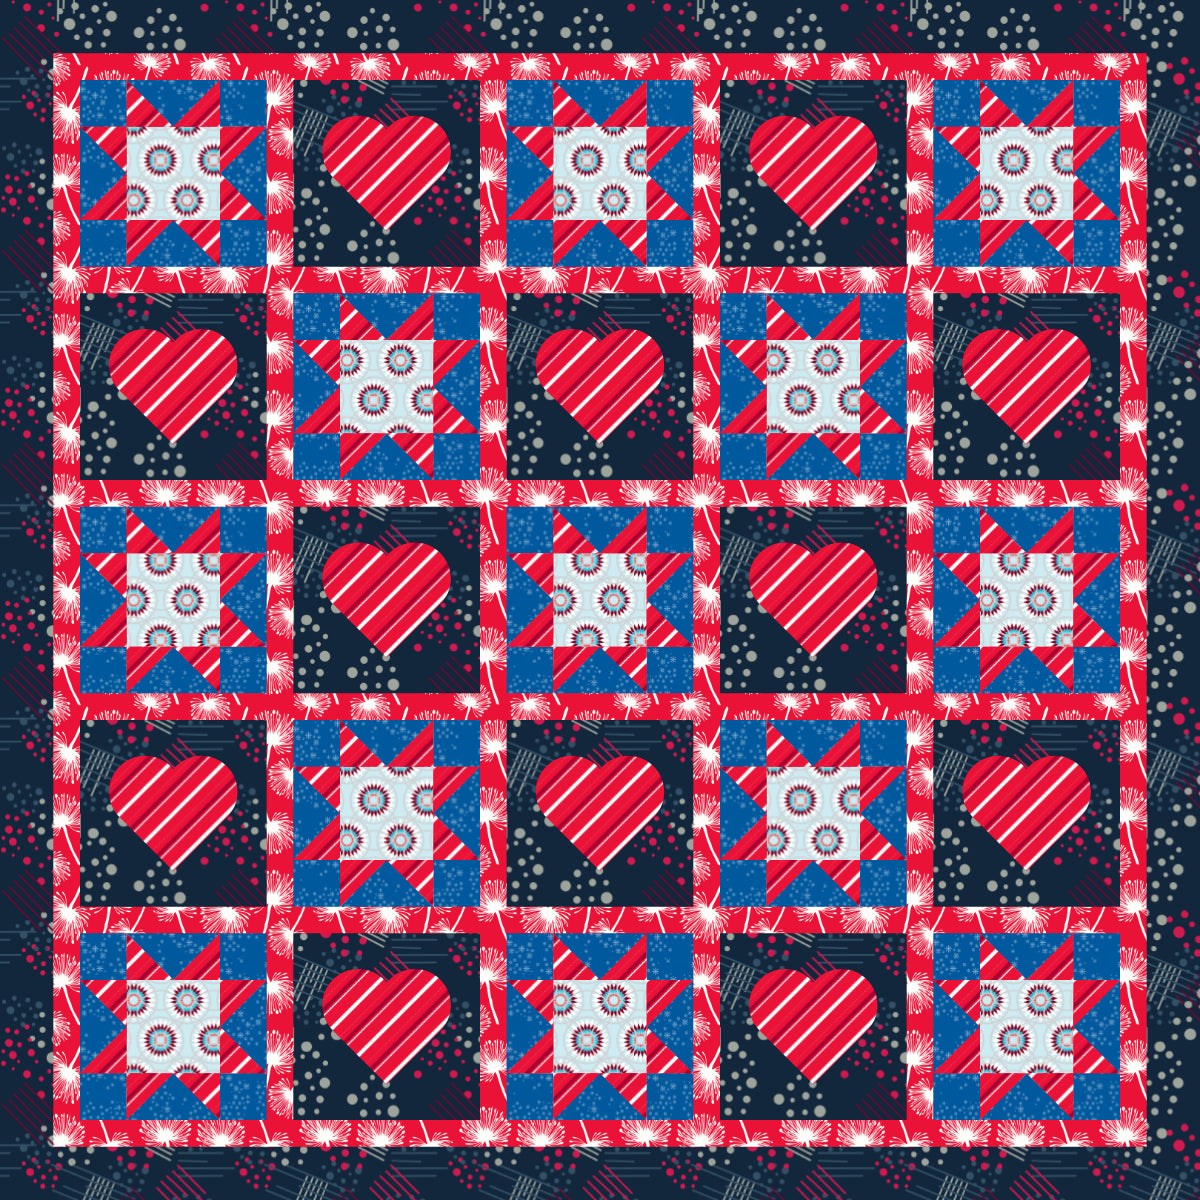 4th of July - 45 x 45 Ready-To-Quilt Fabric Panel